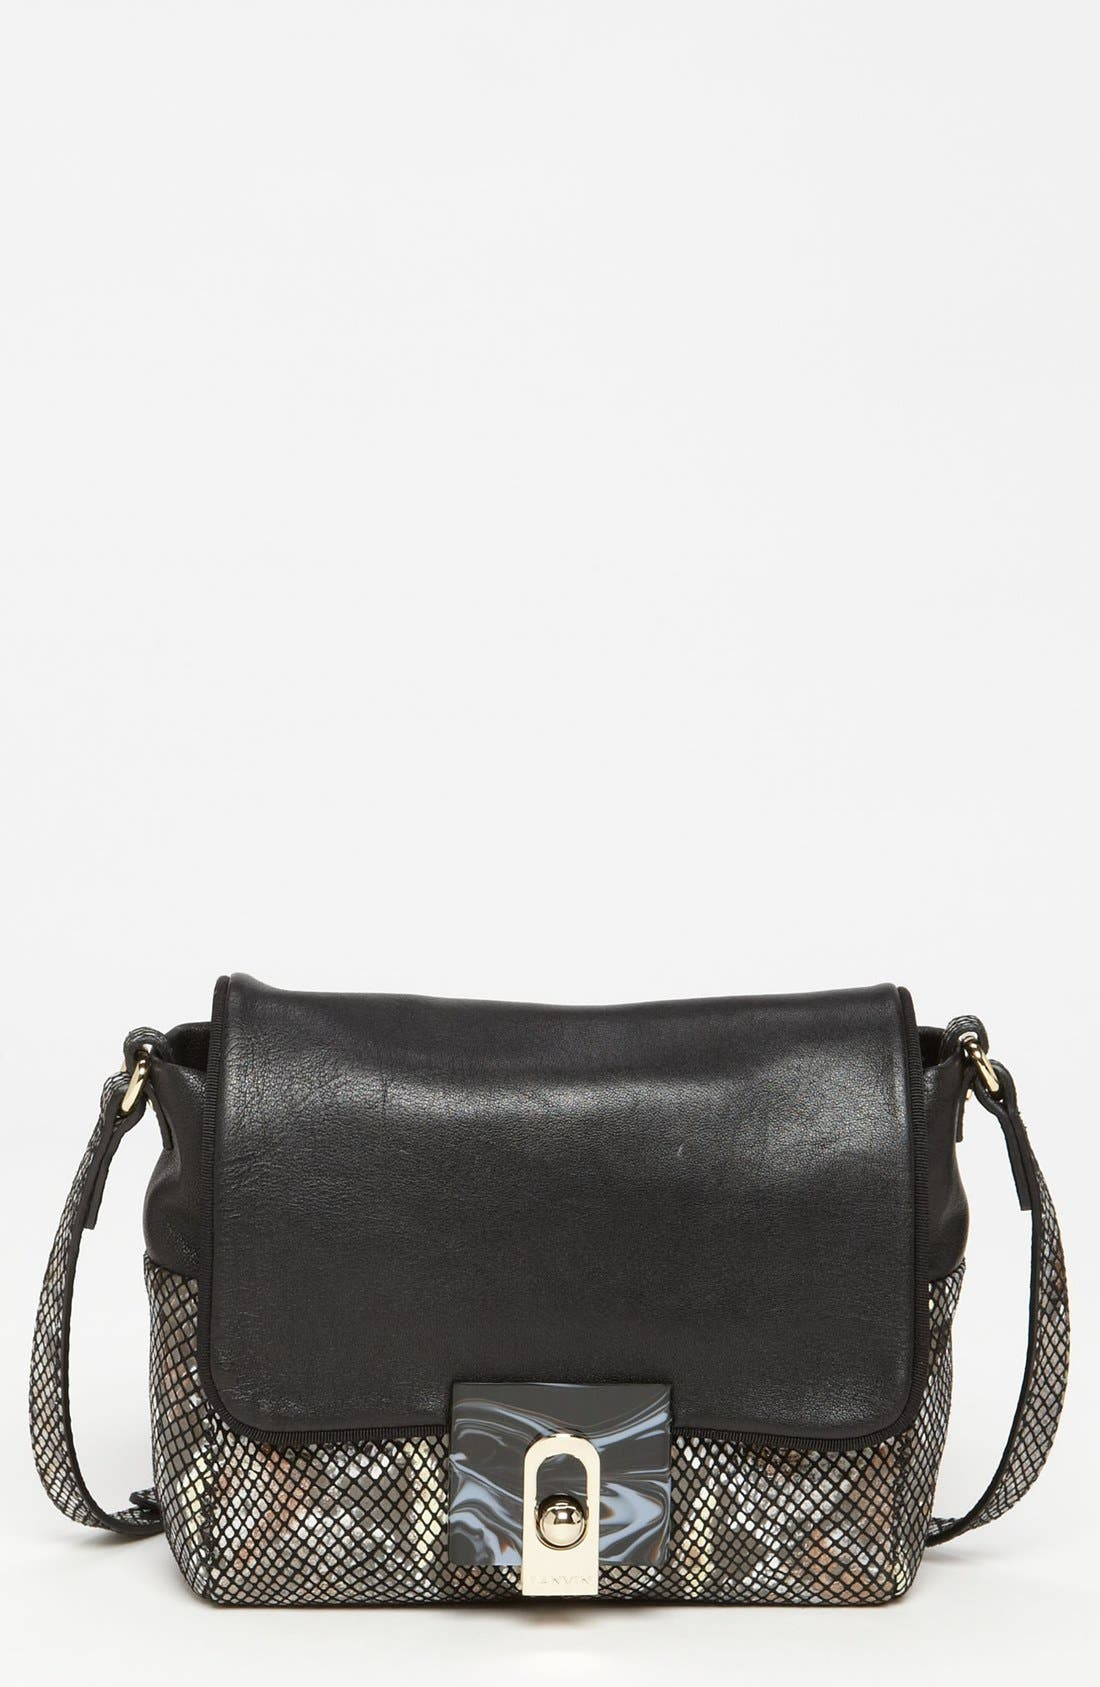 Main Image - Lanvin 'For Me - Small' Faux Snakeskin Crossbody Bag